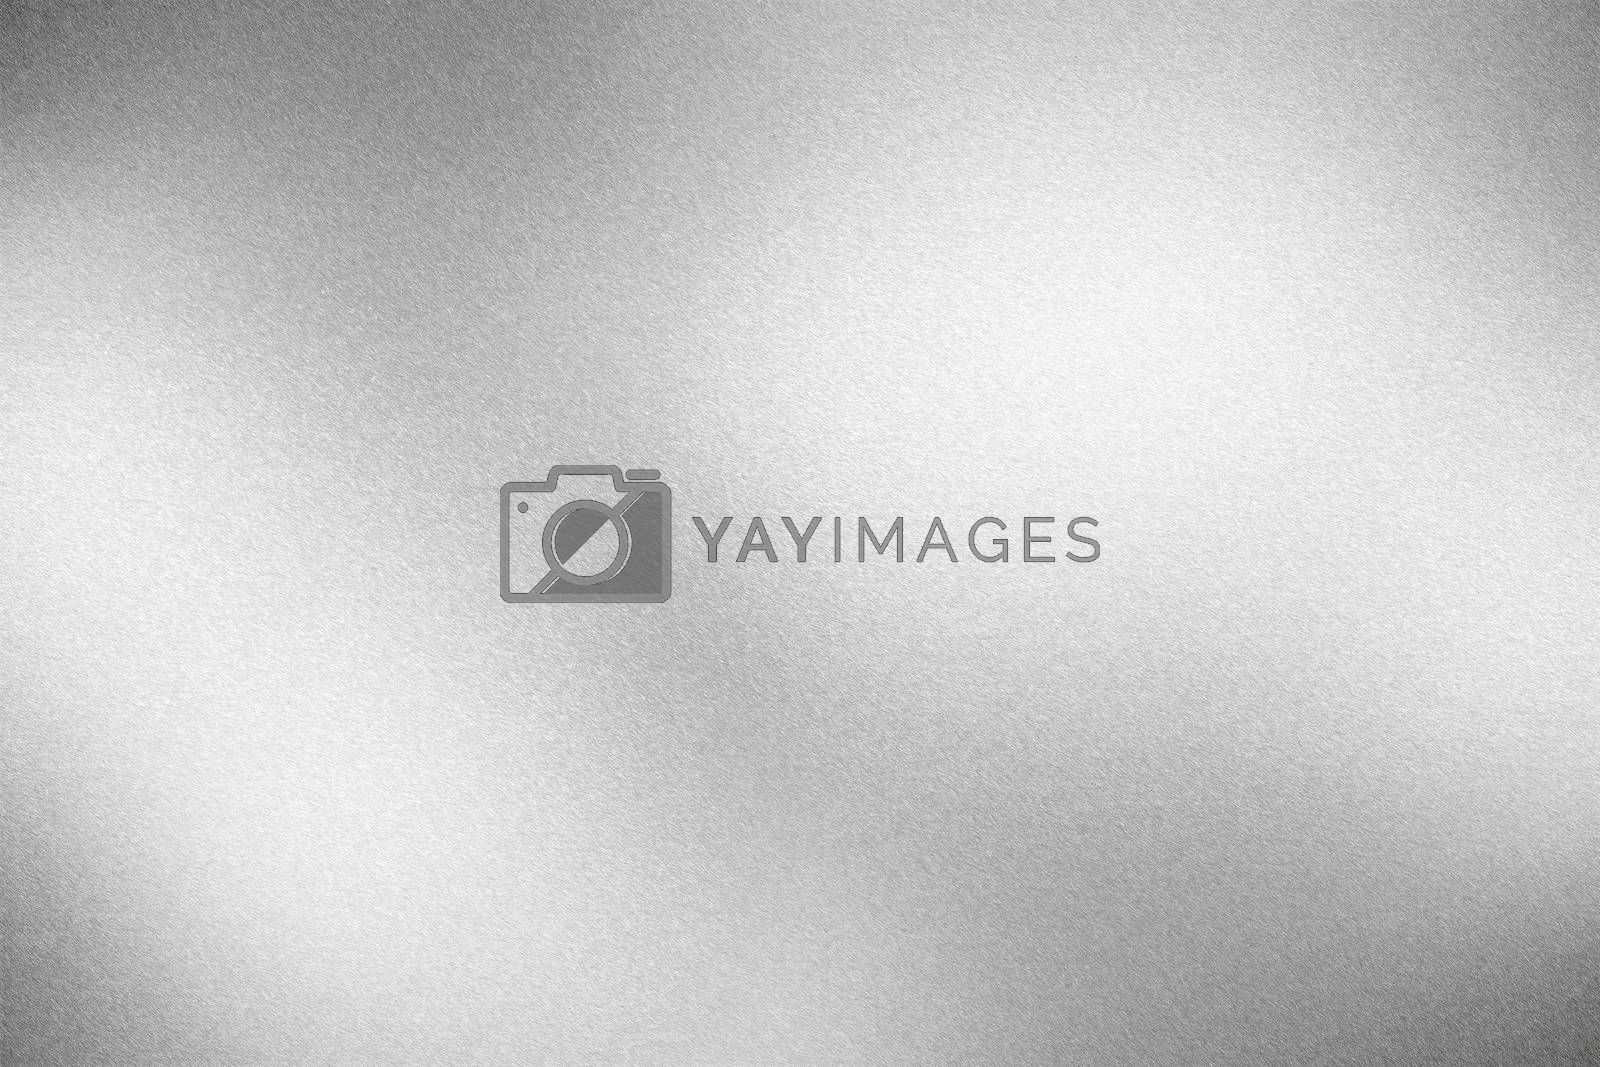 Royalty free image of Glowing rough silver metallic plate, abstract texture background by mouu007